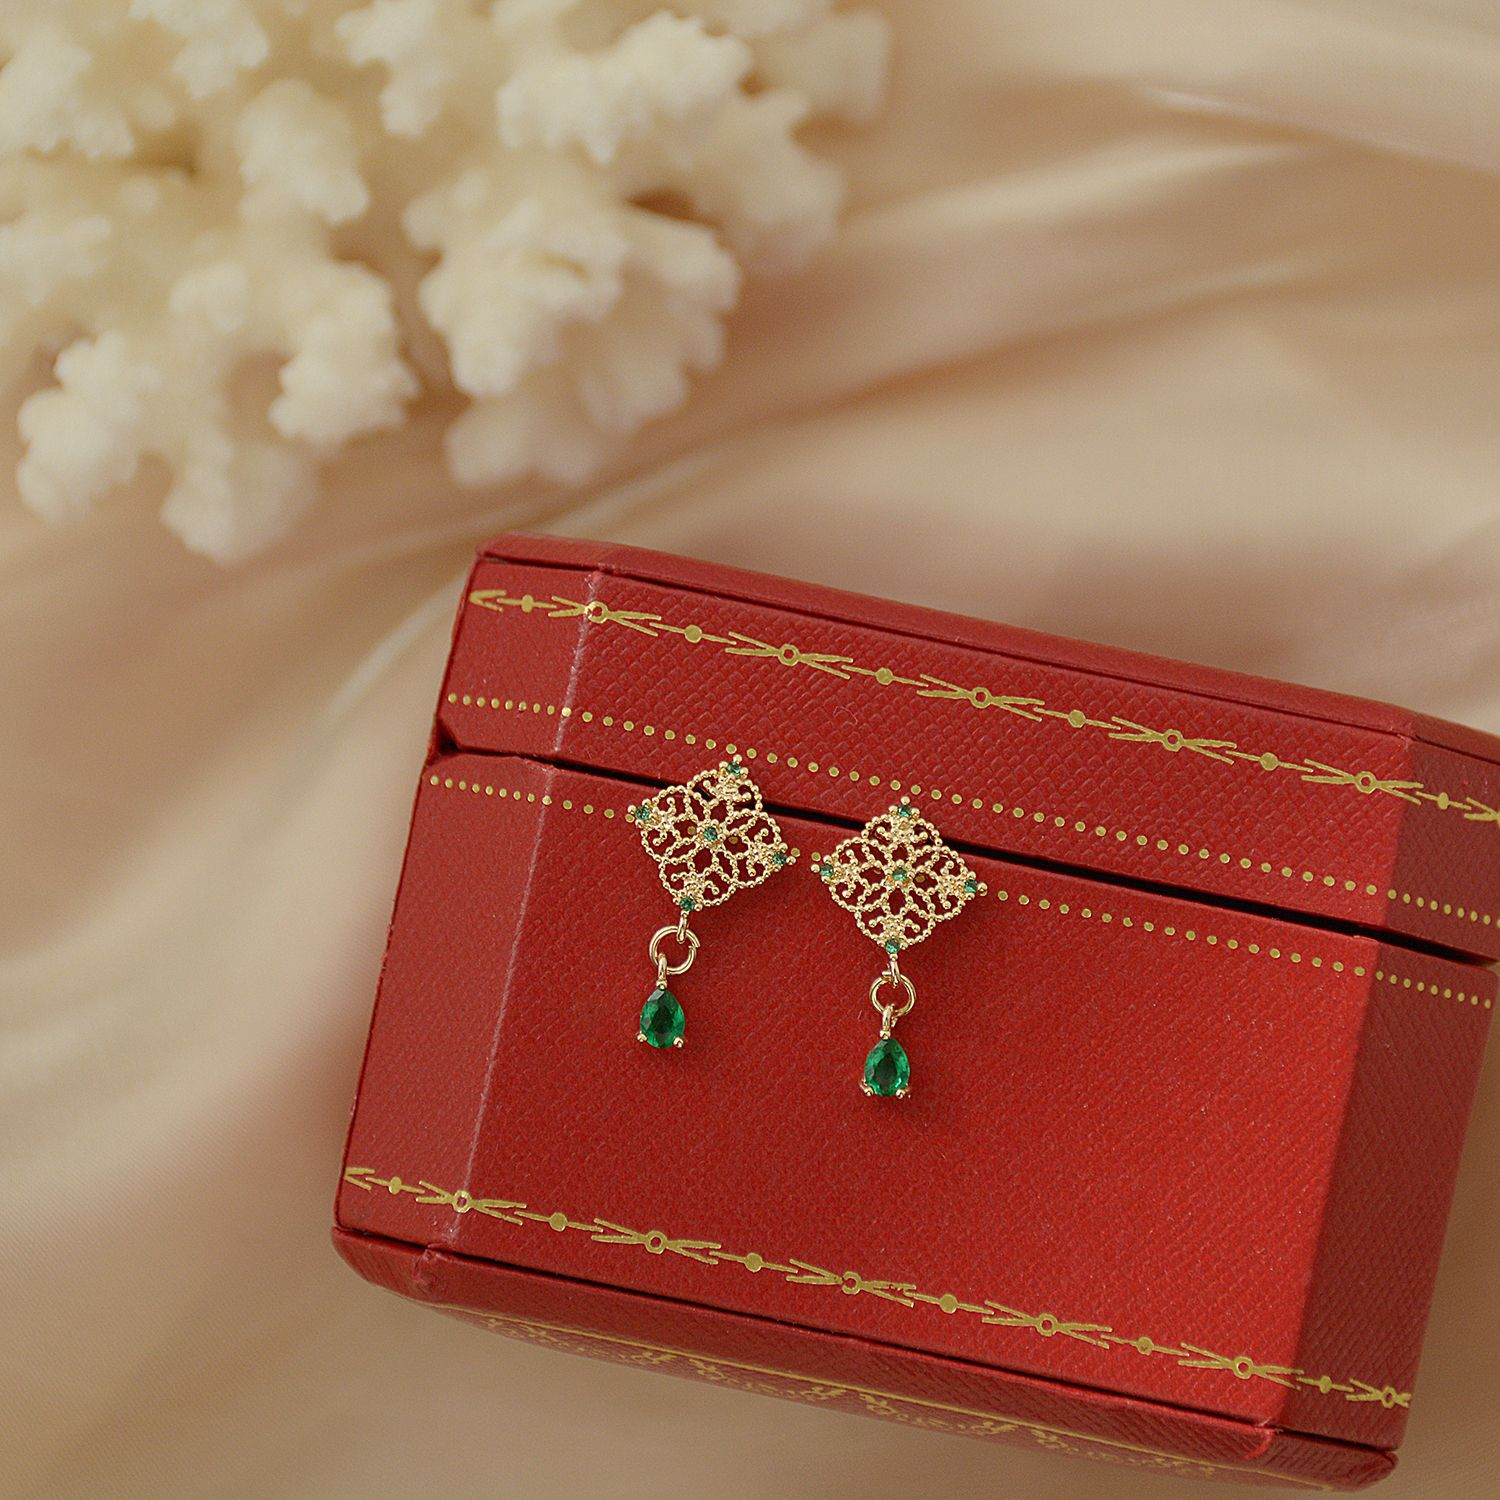 14k Real Gold Plated Fashion Jewelery Green Crystal Hollow Metal Exquisite Earrings for Woman Holiday Party Elegant Earring